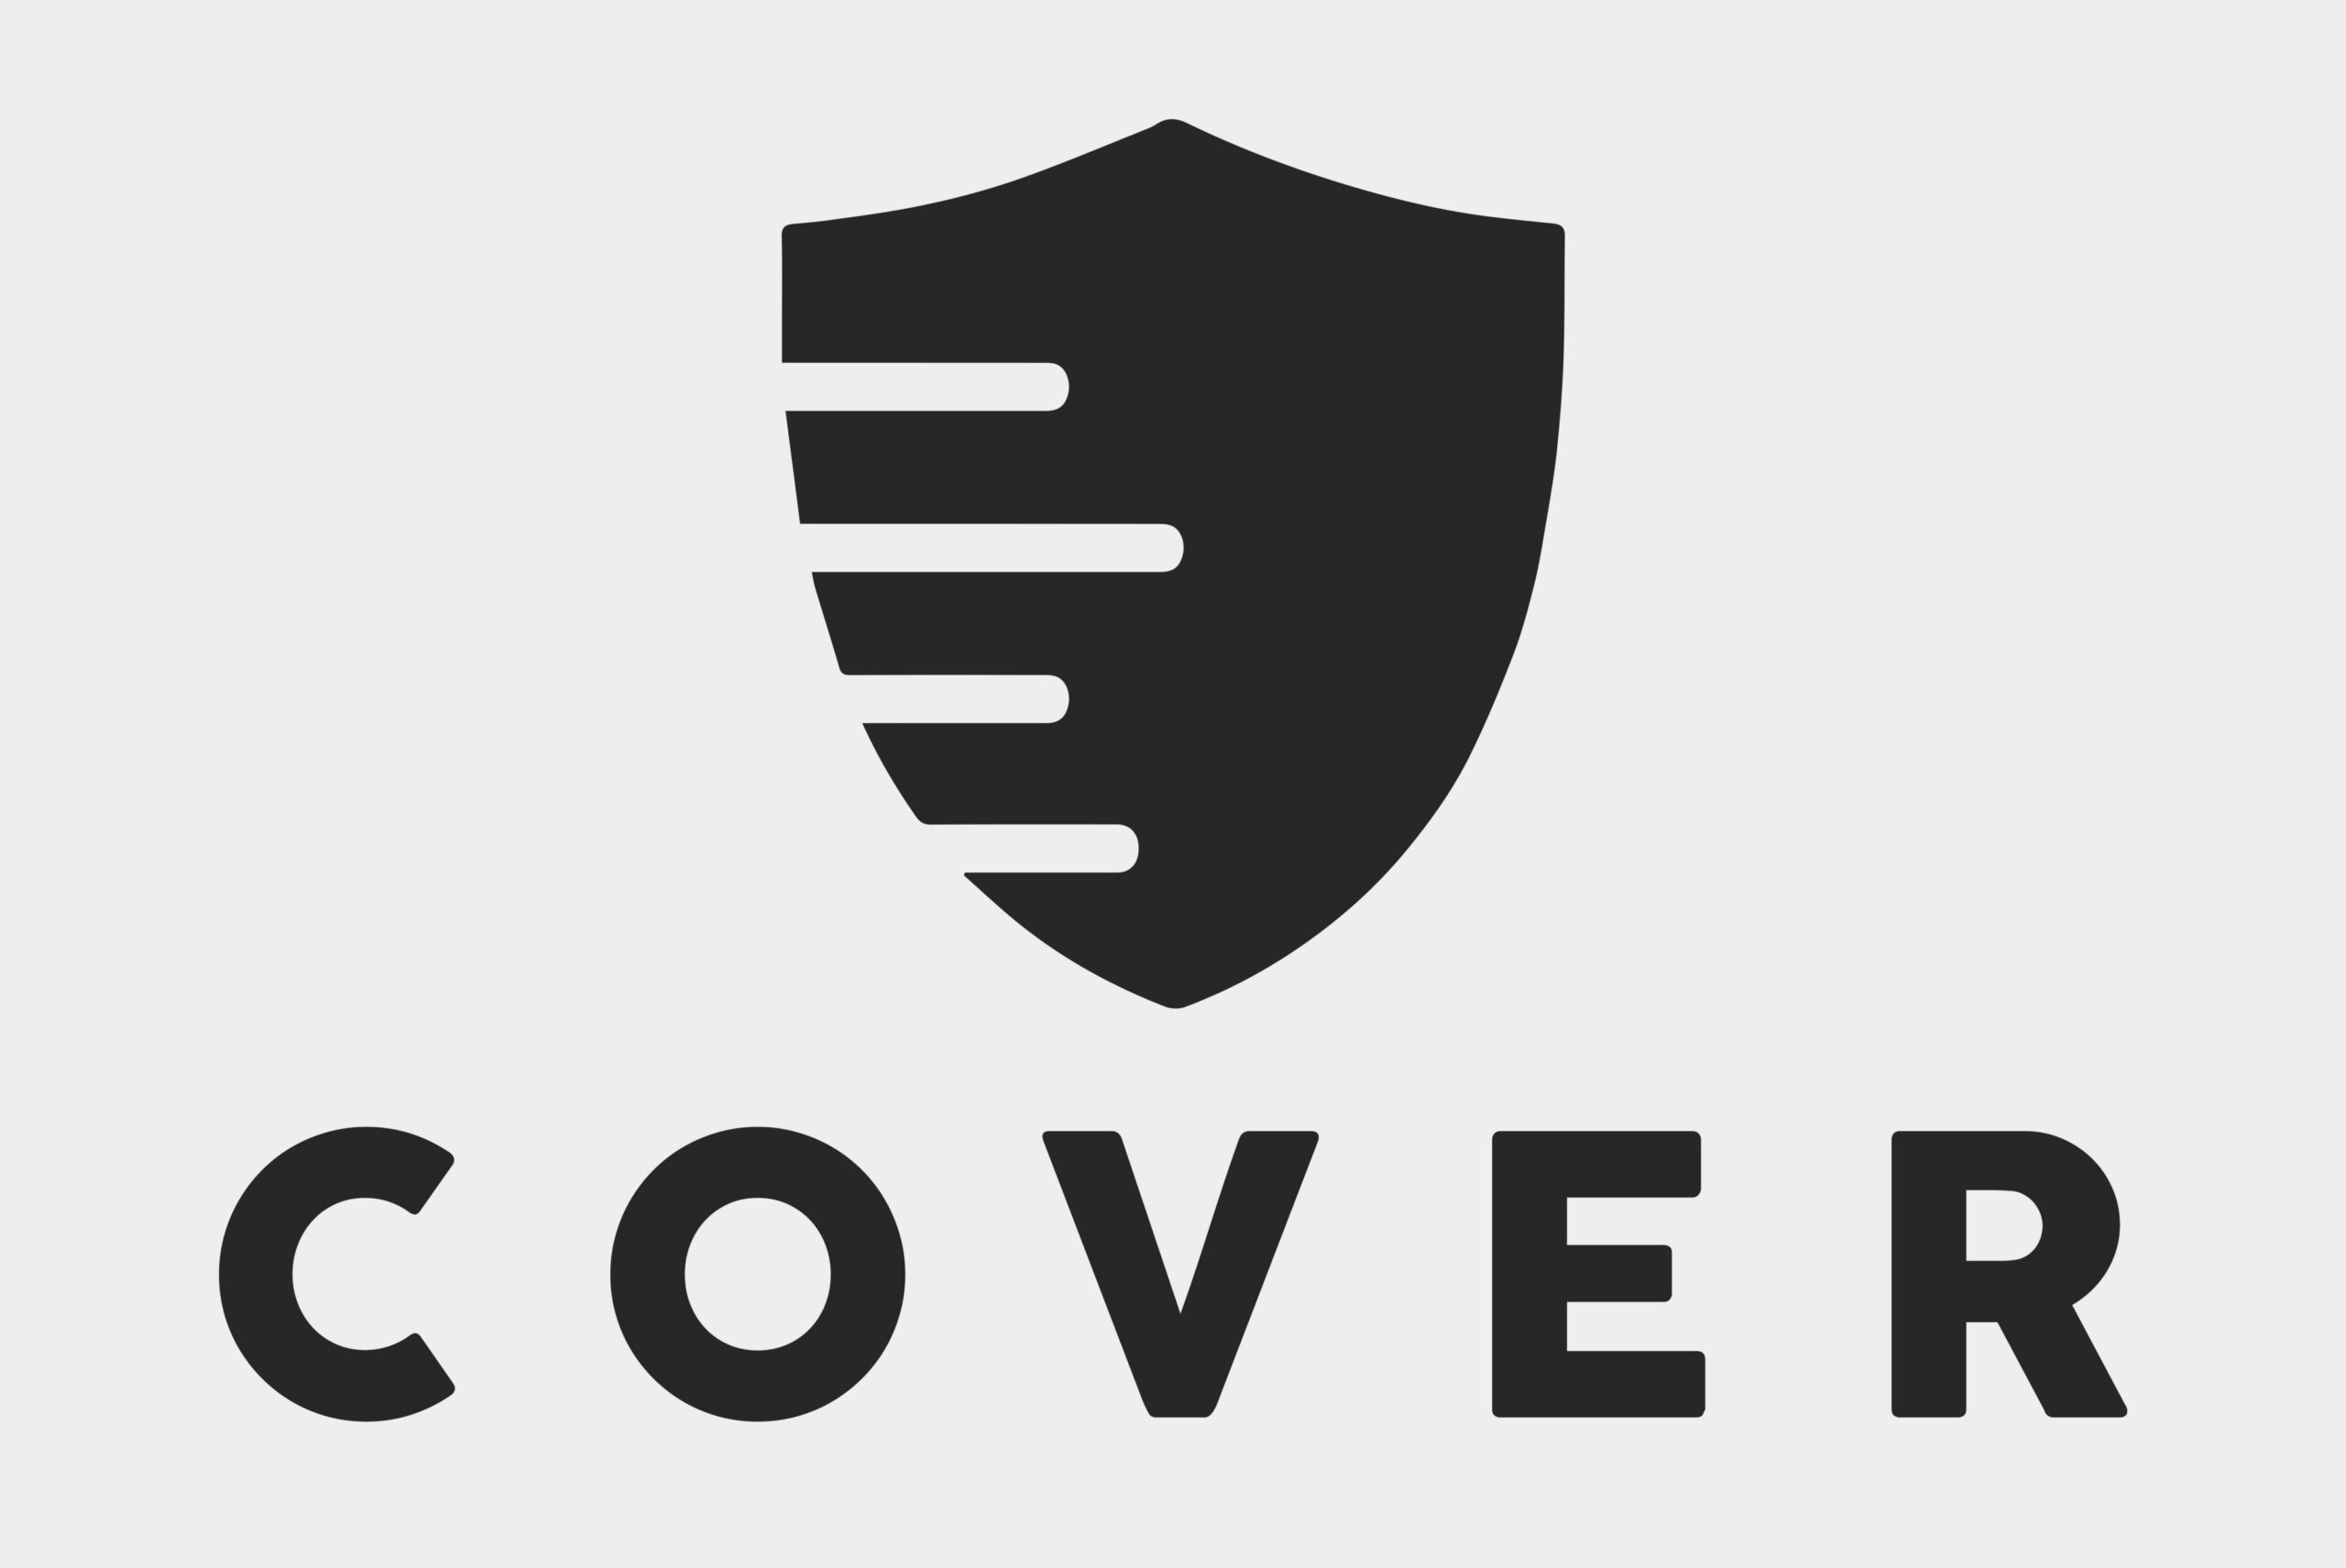 Cover Protocol experiences relentless minting attacks, price falls at 97%.